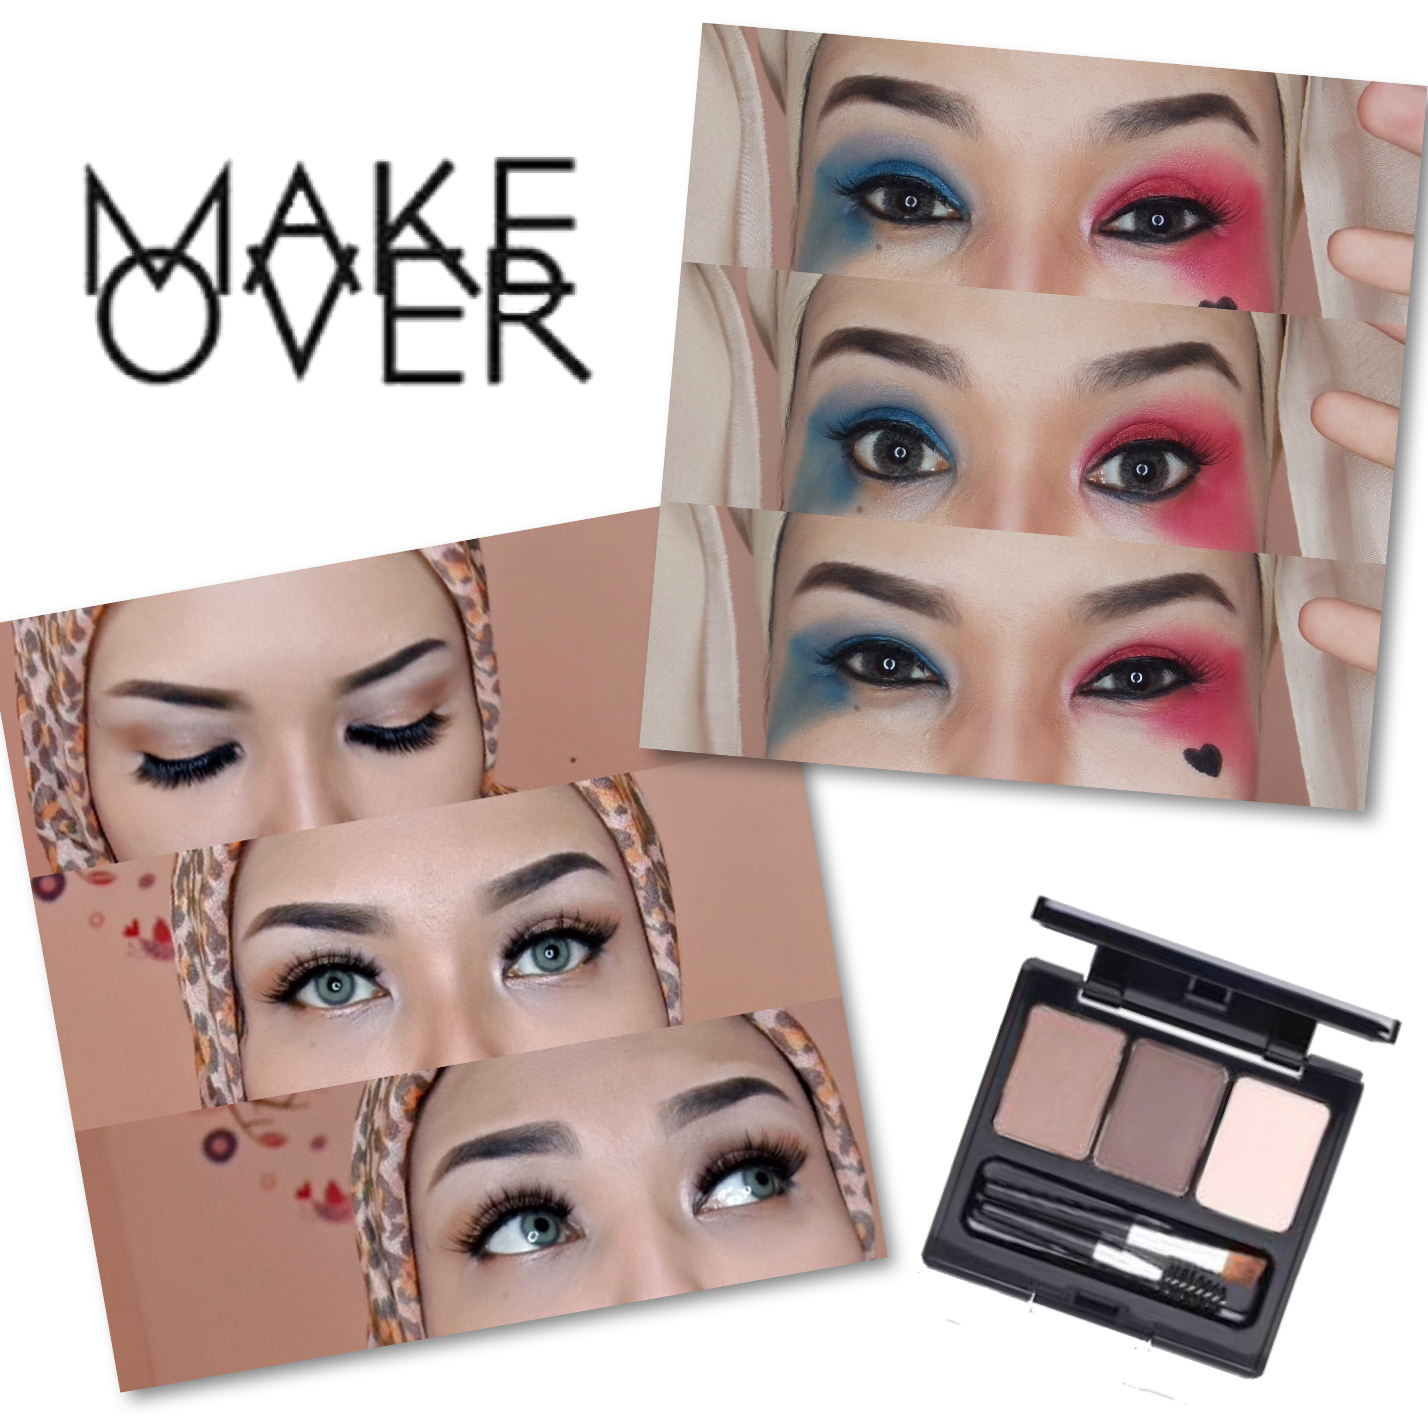 Putris Beauty Blog Review Makeover Eyebrow Definition Kit